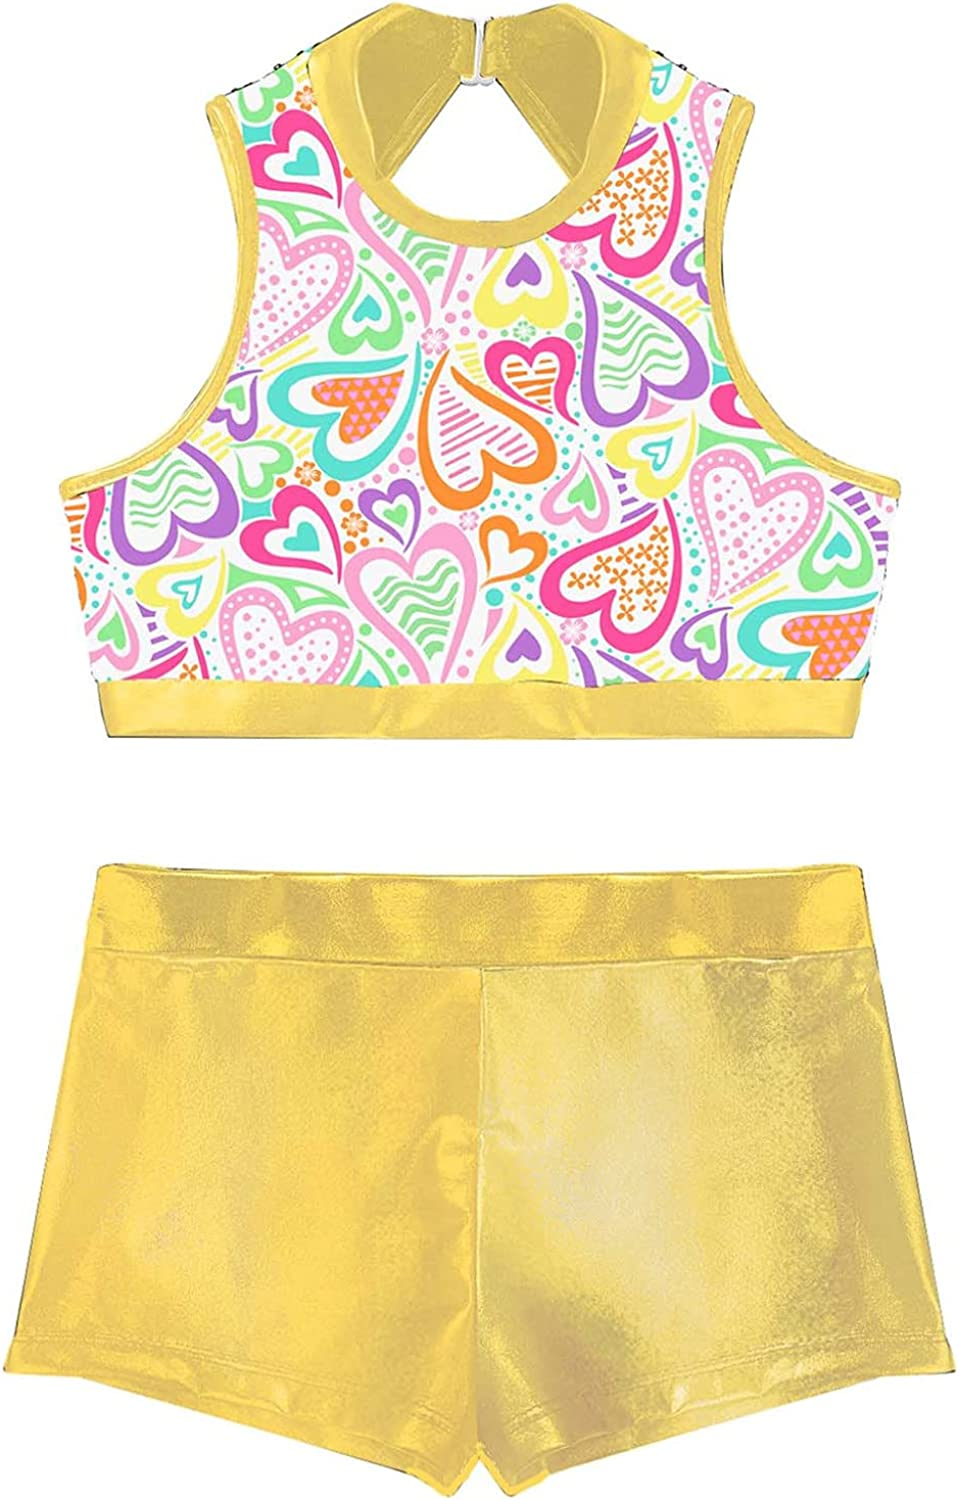 Moily Kids Girls Sequins Mock Neck Crop Top with Metallic Booty Shorts Athletic Dance Outfit Swimsuit